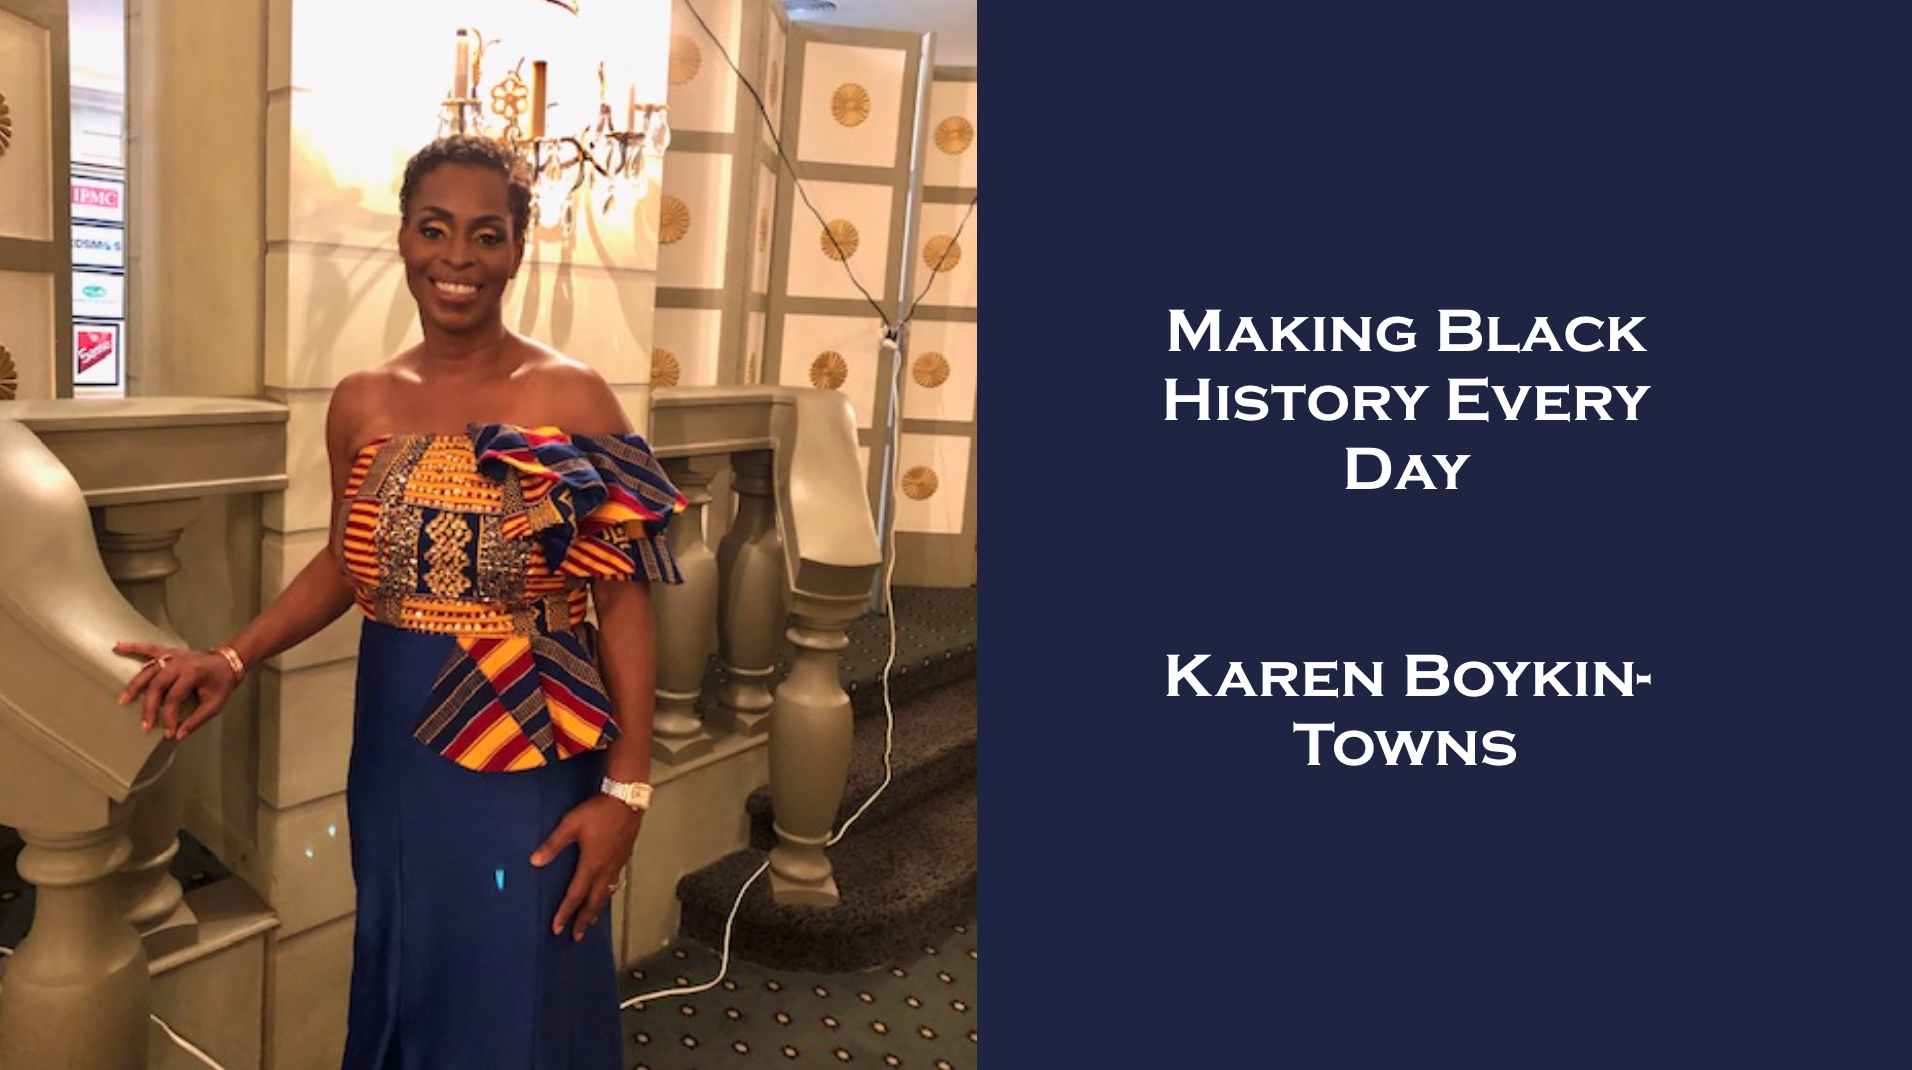 Karen Boykin-Towns - Making Black History Every Day